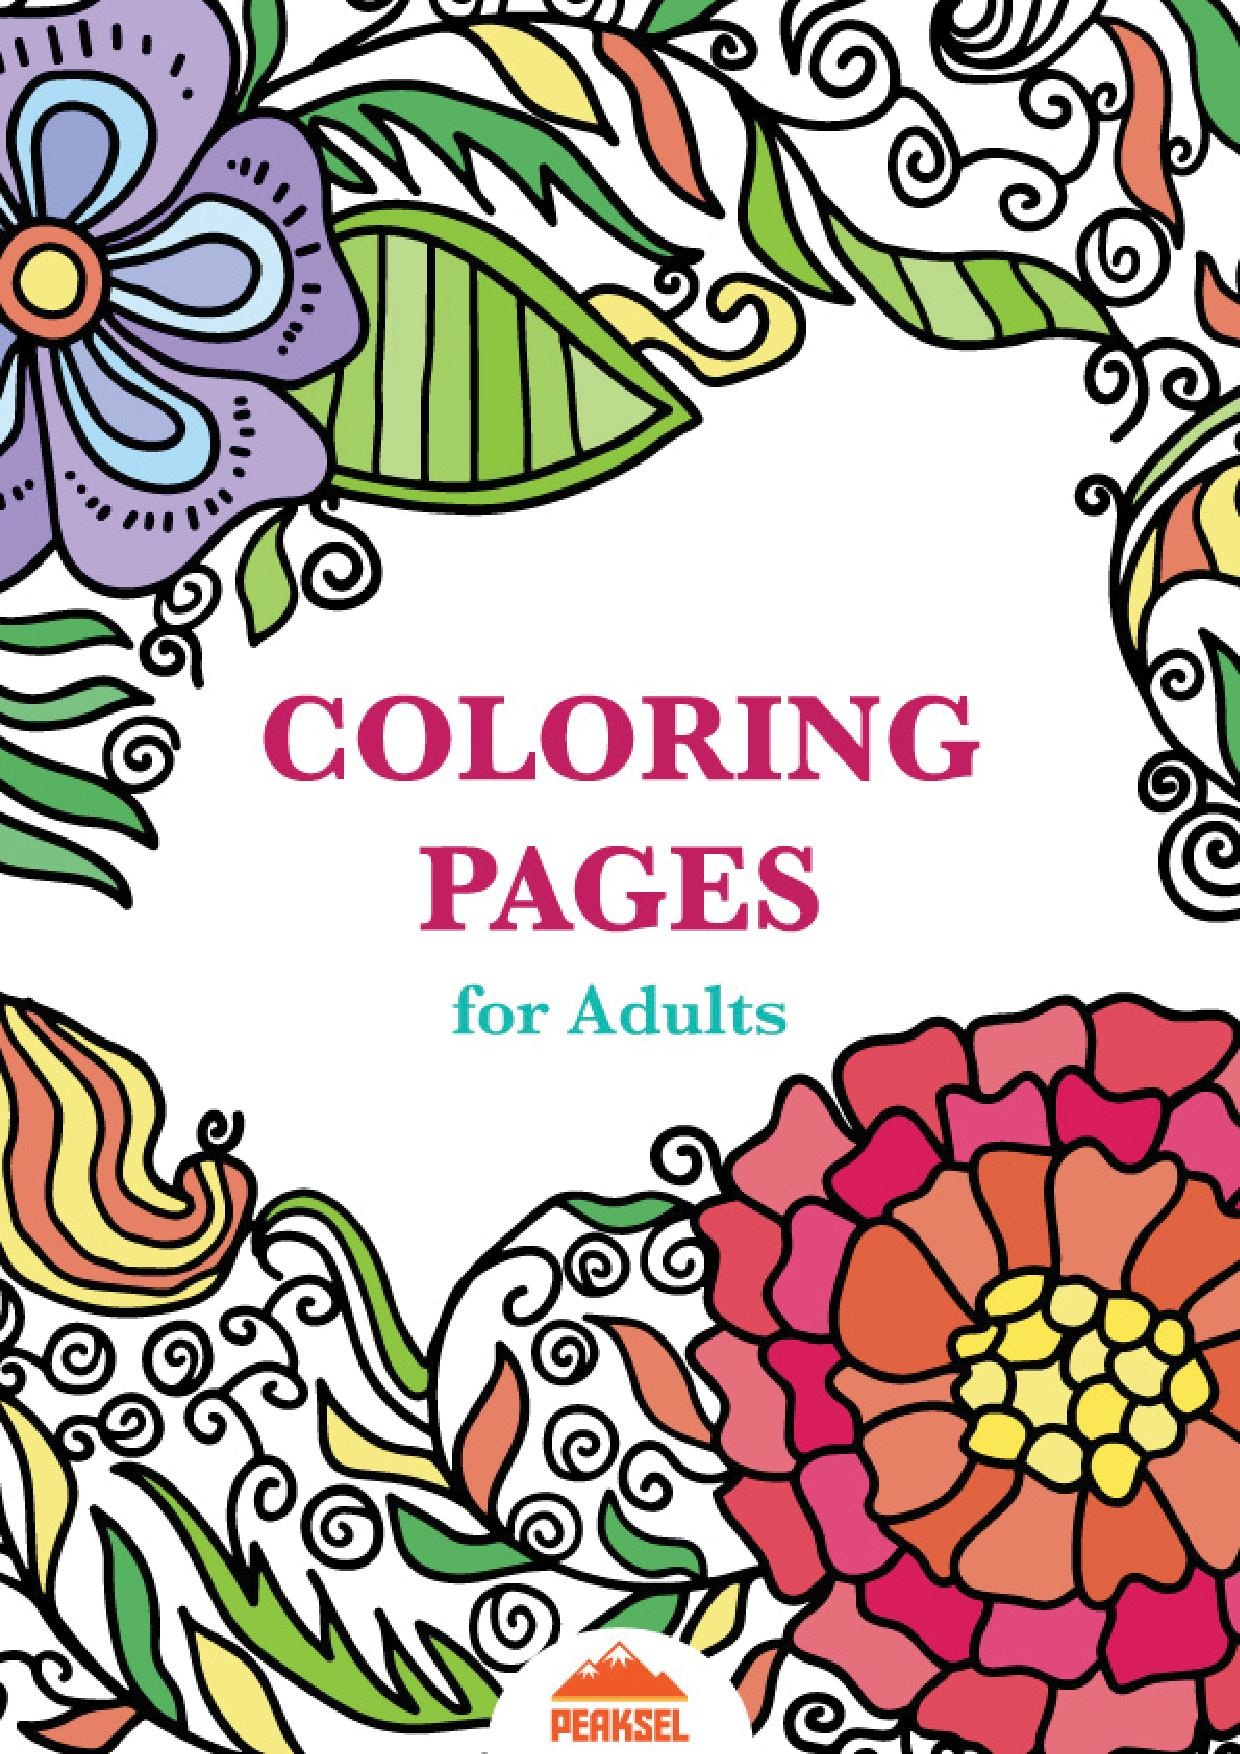 FilePrintable Coloring Pages for Adults Free Adult Coloring